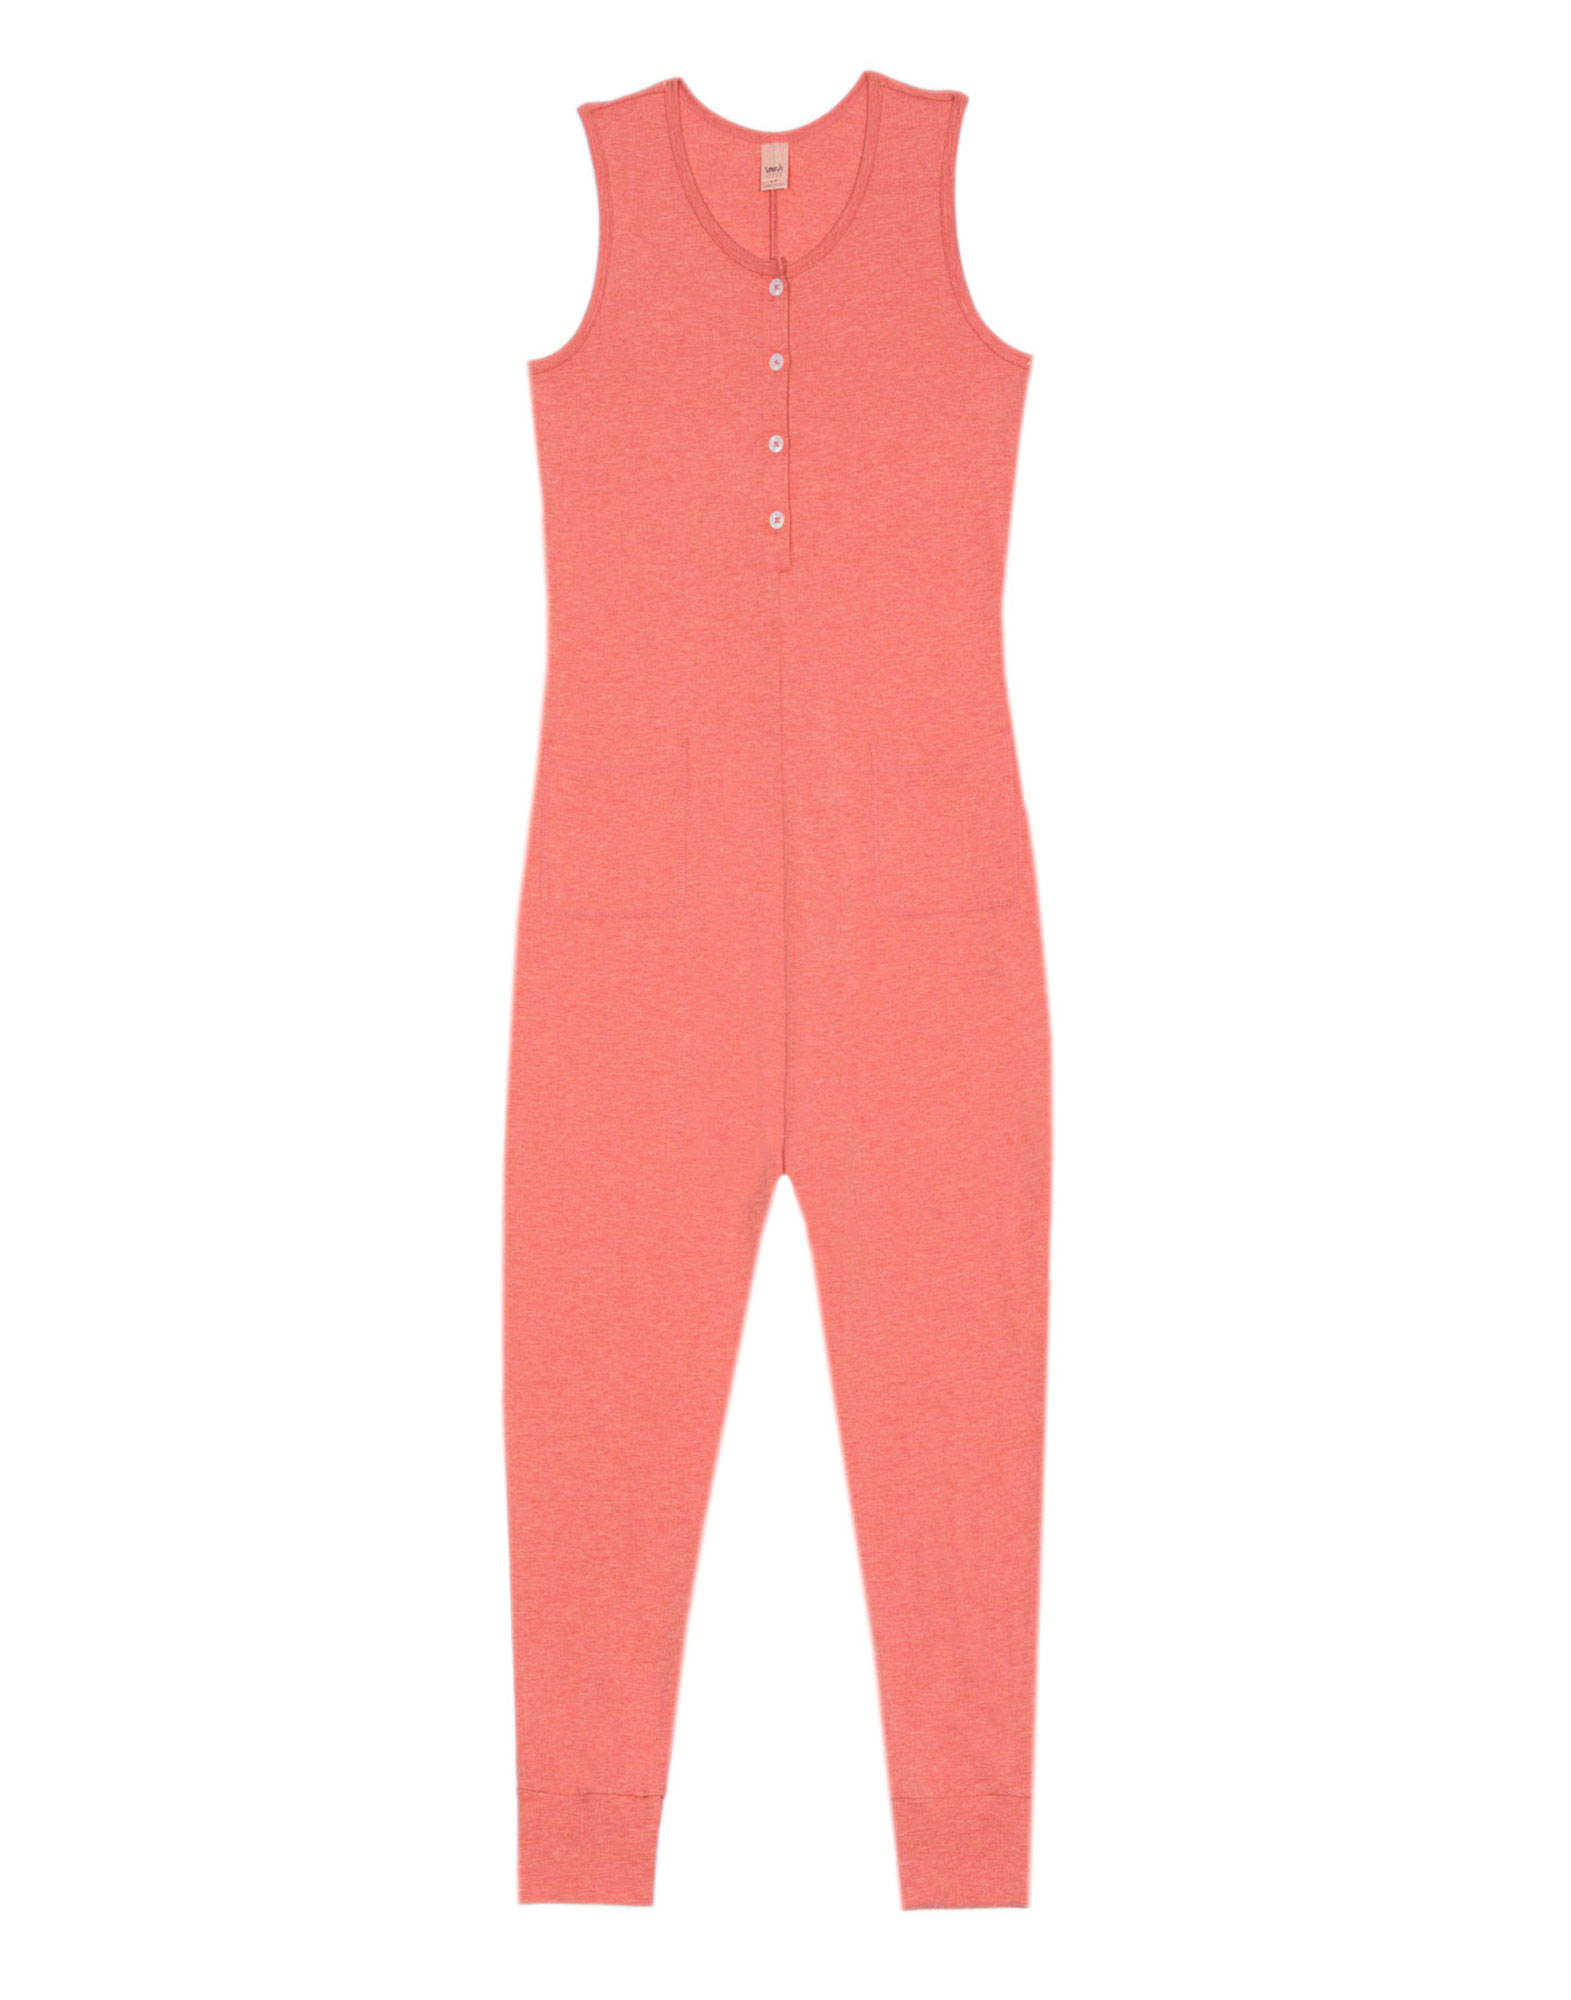 Bachelorette Jillian Harris Is Here with the Coziest Loungewear - Loungewear from Jillian Harris' new clothing collection